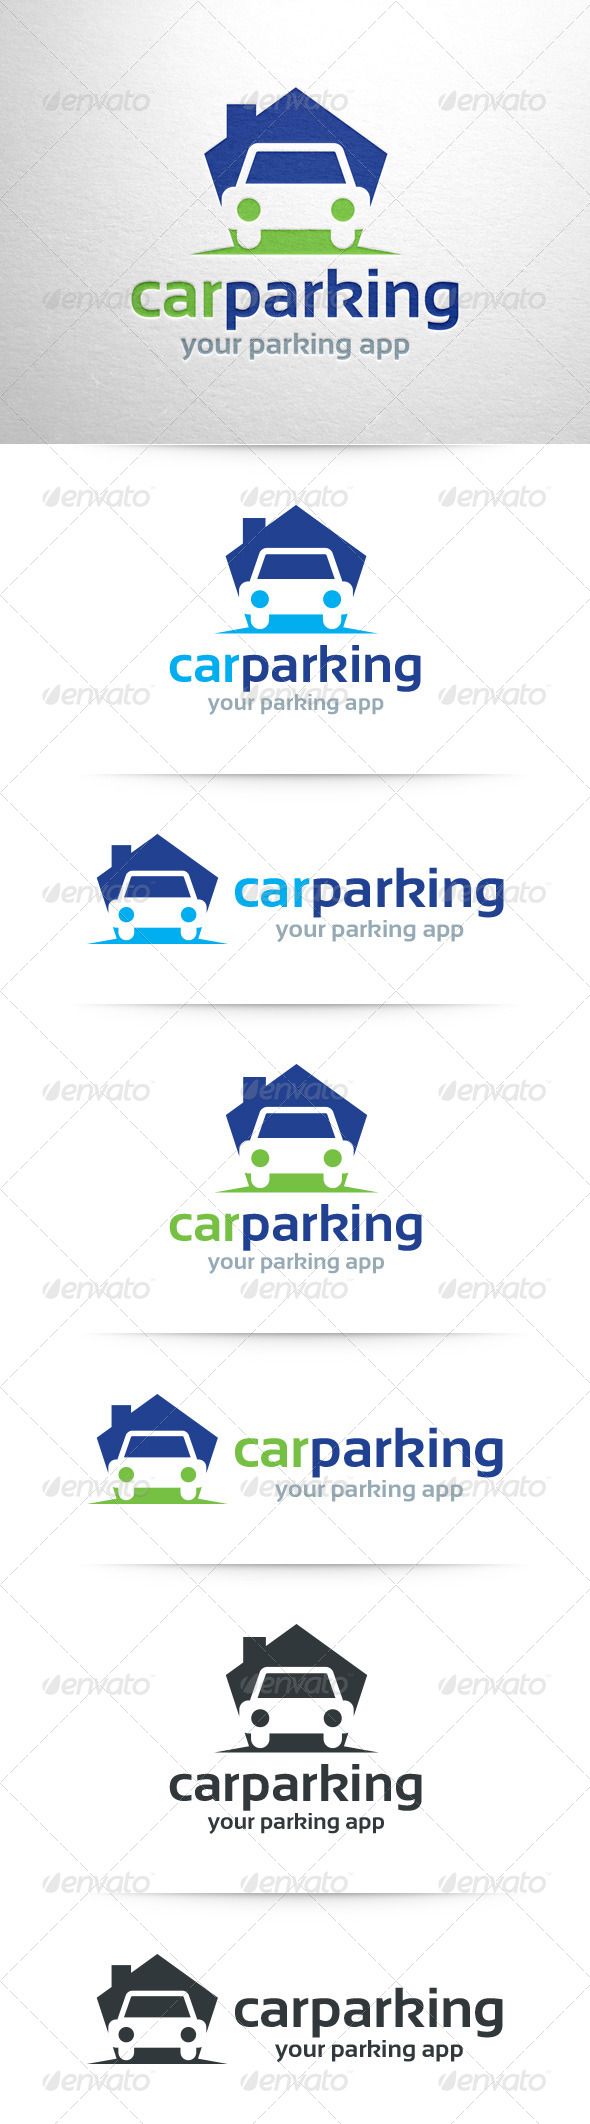 GraphicRiver Car Parking Logo Template 8349287